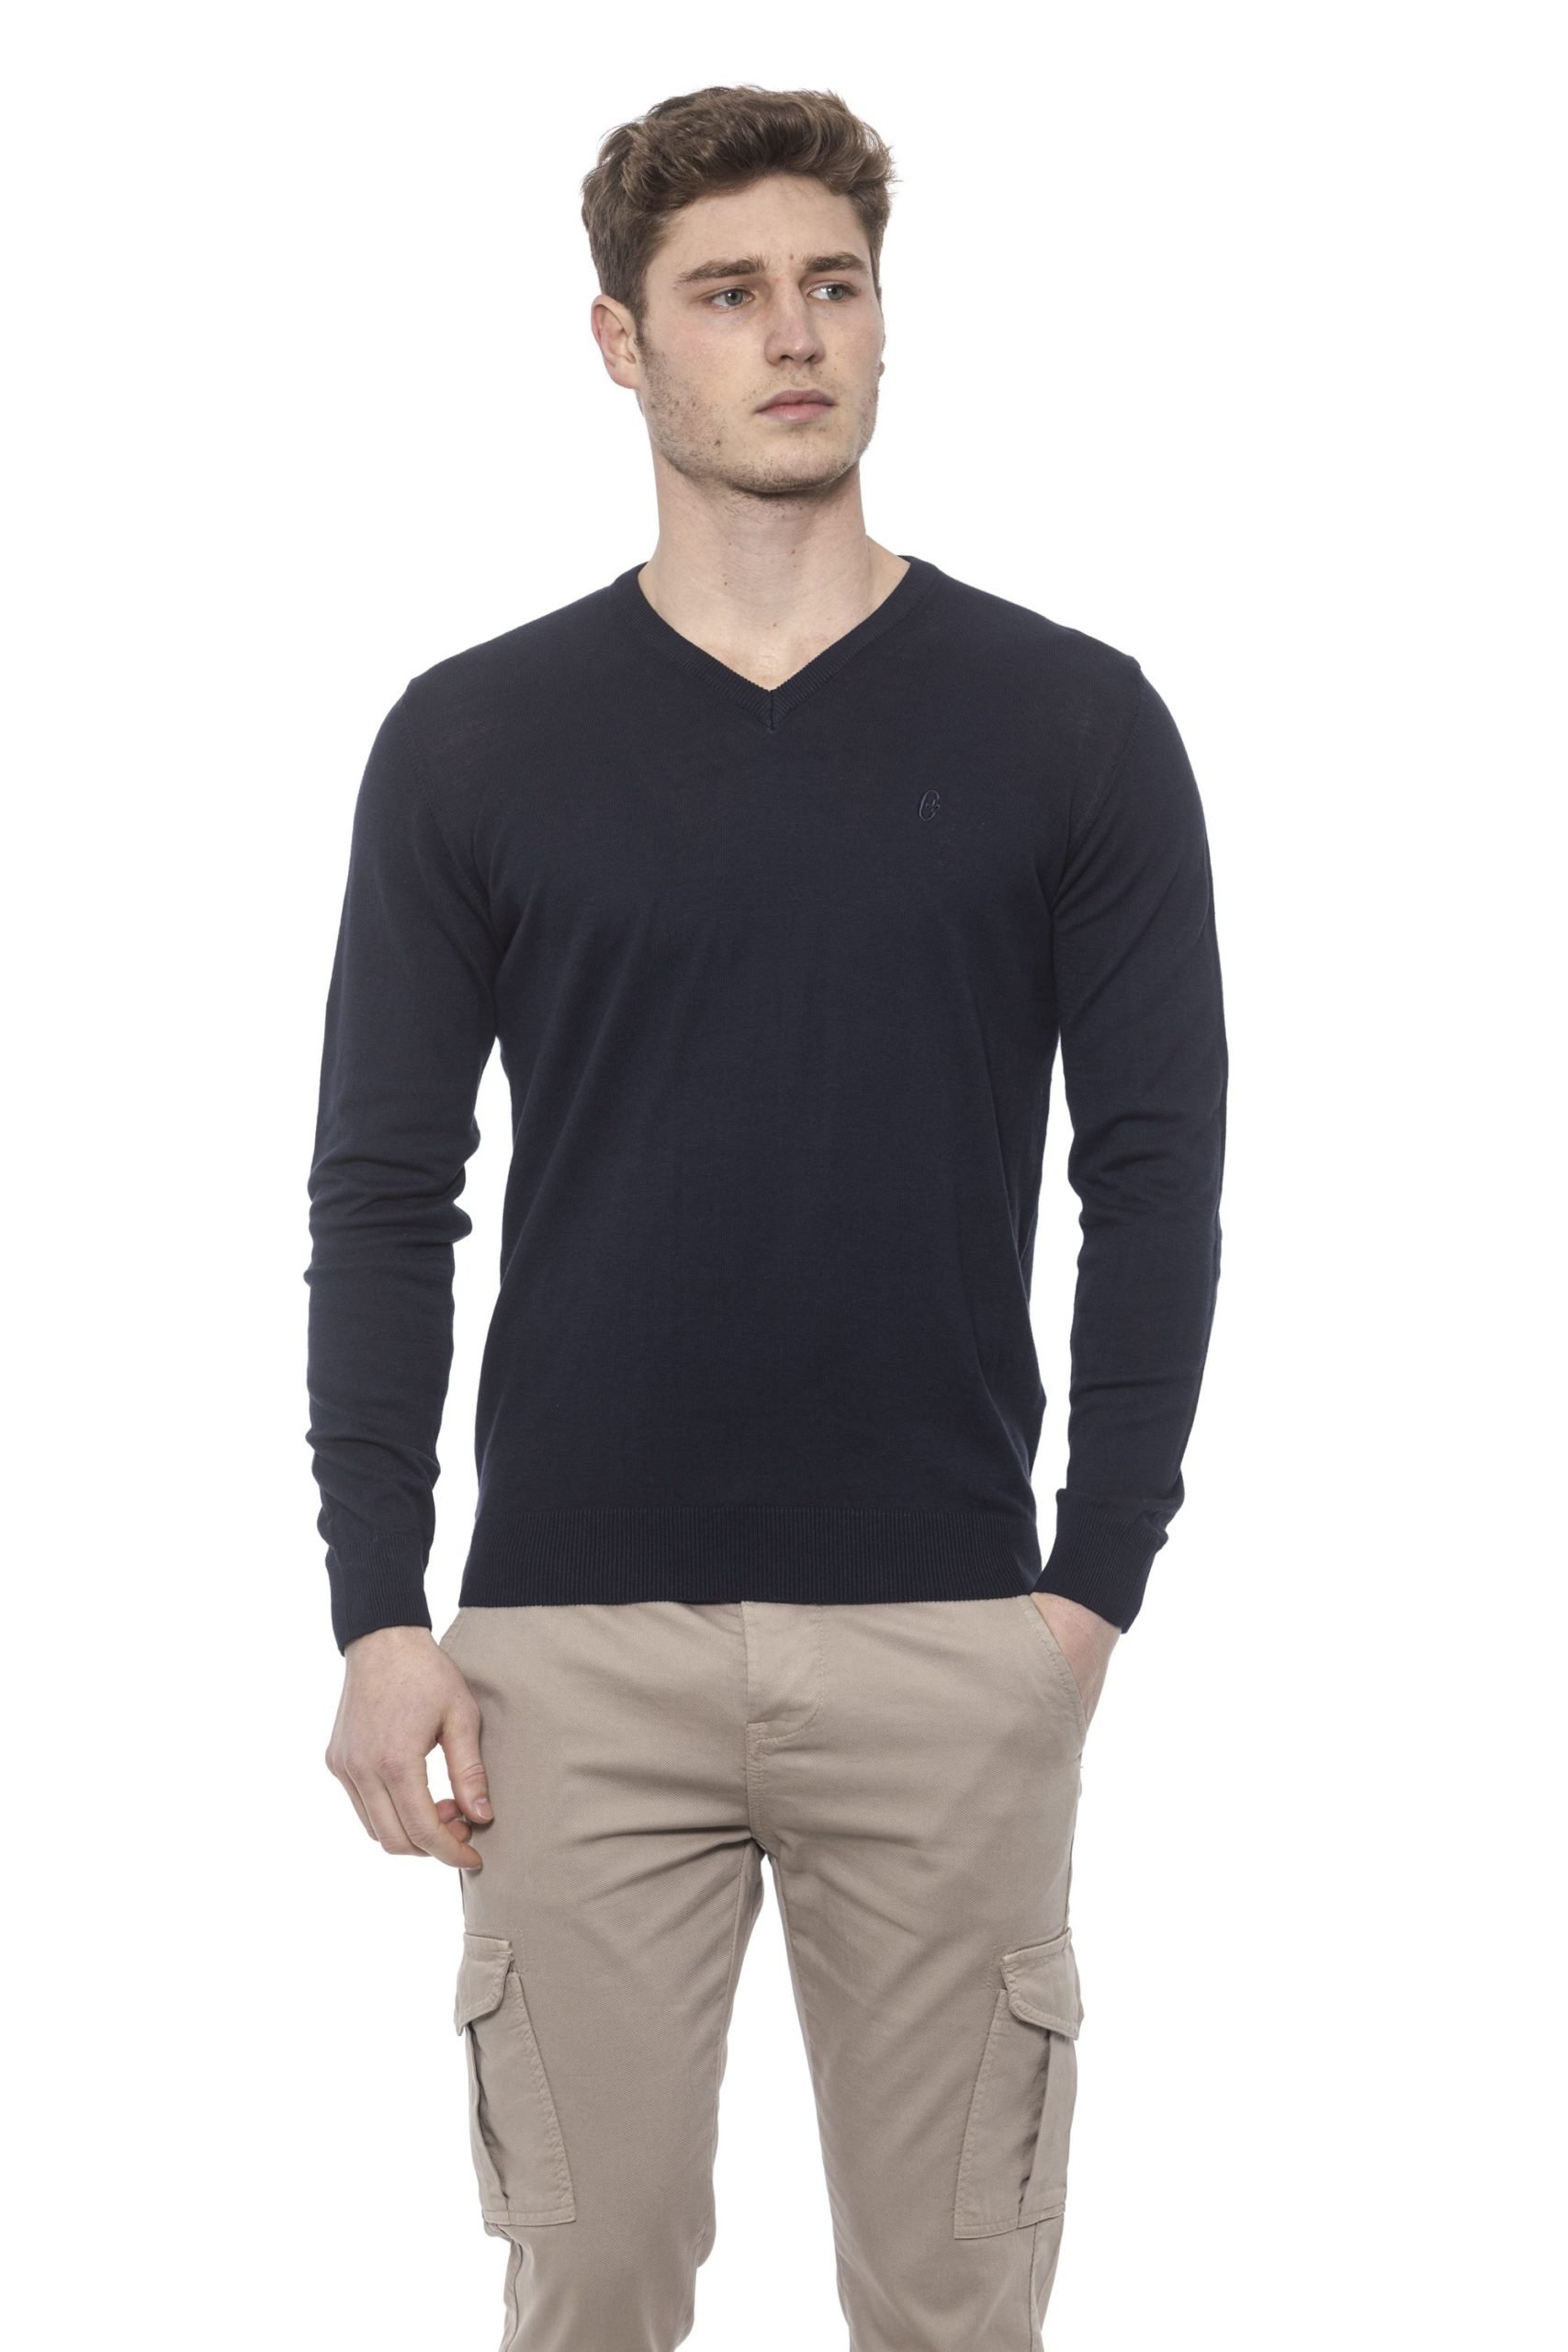 Conte of Florence Men's Sweater Blue CO1376428 - S